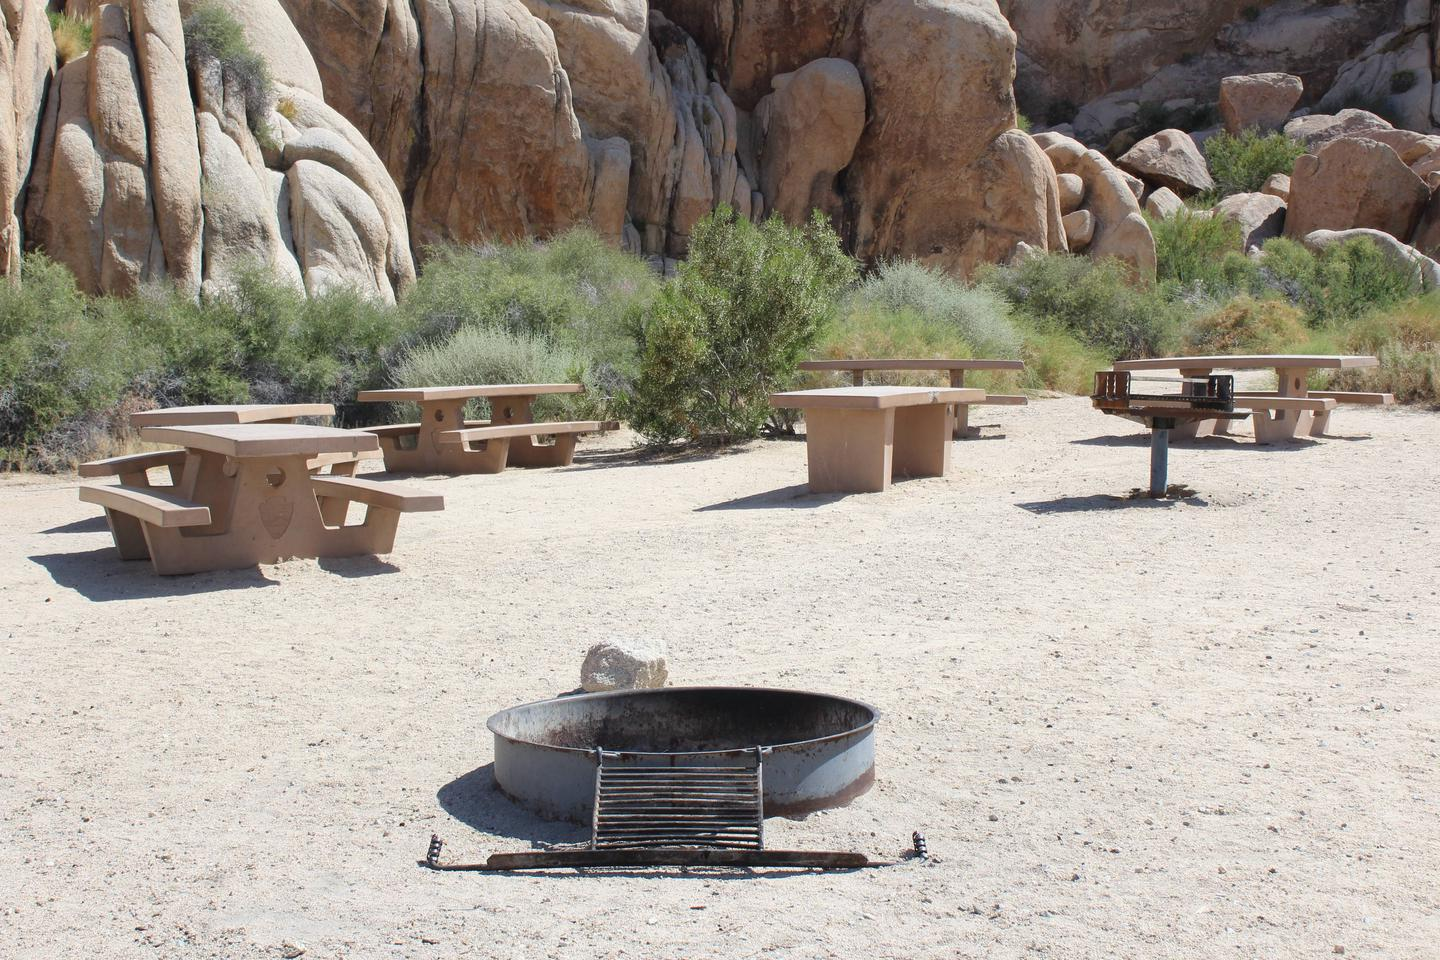 Indian Cove Group Site 1 AmenitiesAmenities: BBQ Grill, Tables and In-Ground Fire Pit